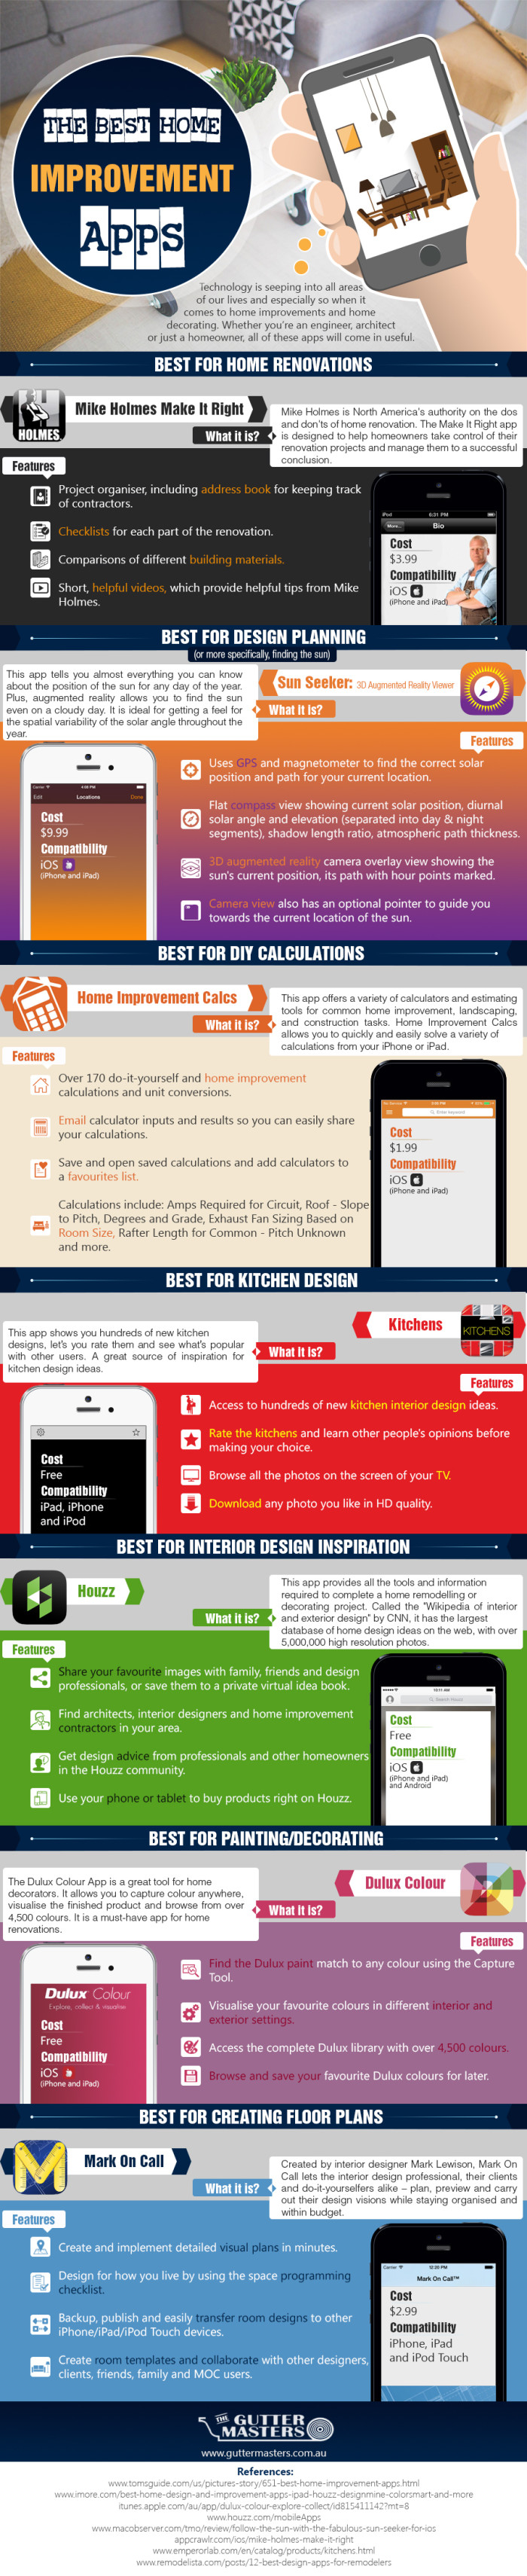 Home Improvement Apps Endearing Of Best Home Improvement Apps [Infographic]  Designer Mag Picture